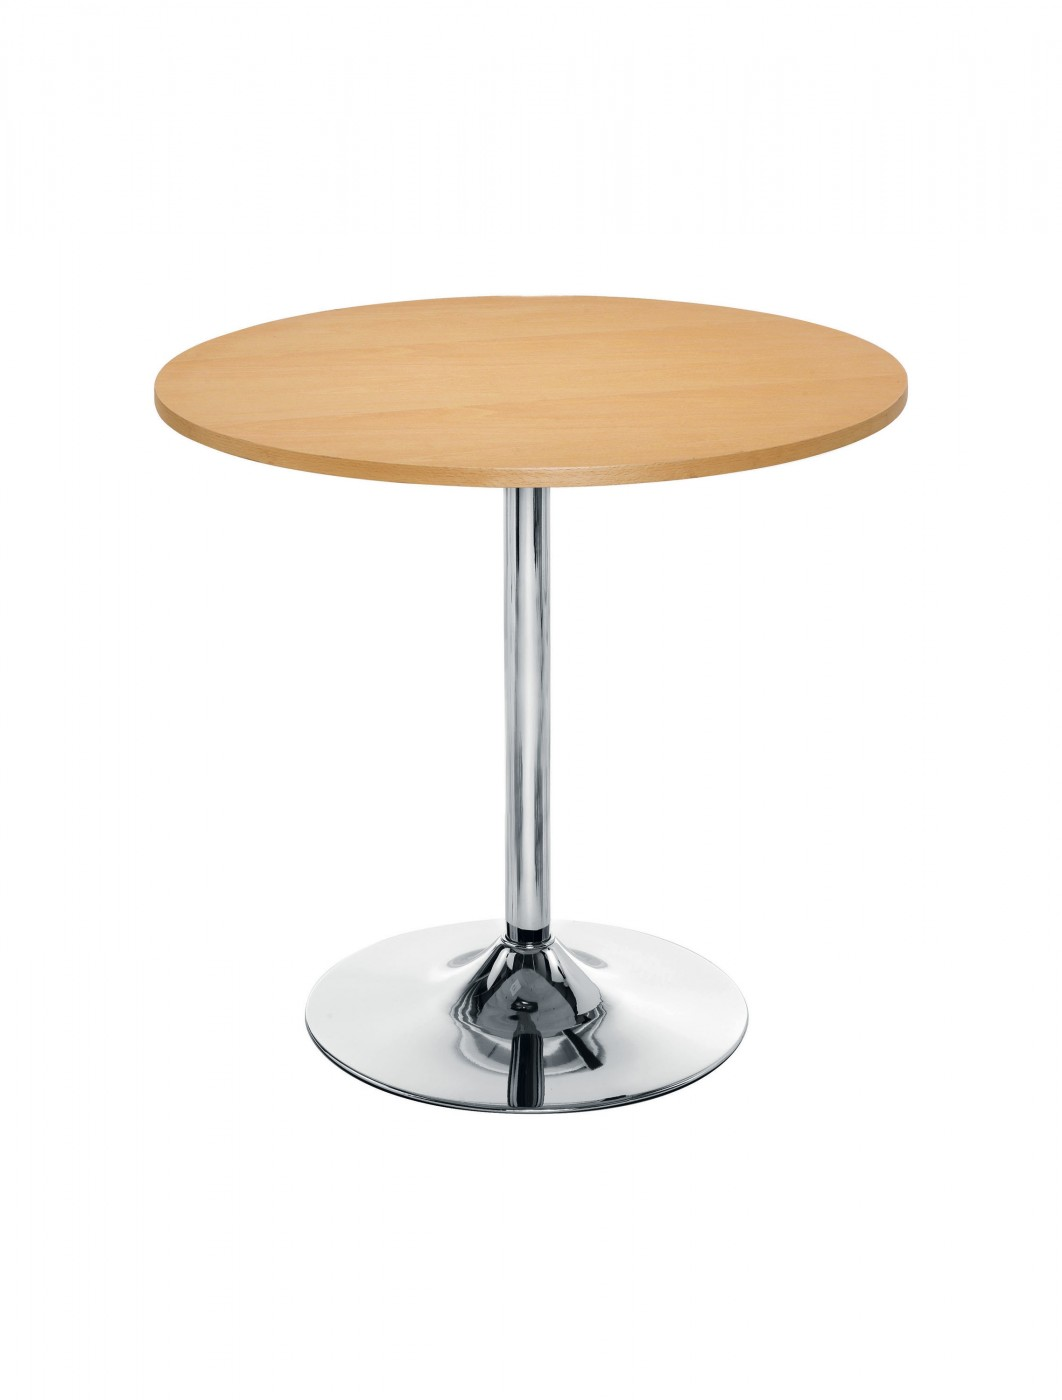 Ellipse Trumpet Base Wooden Table